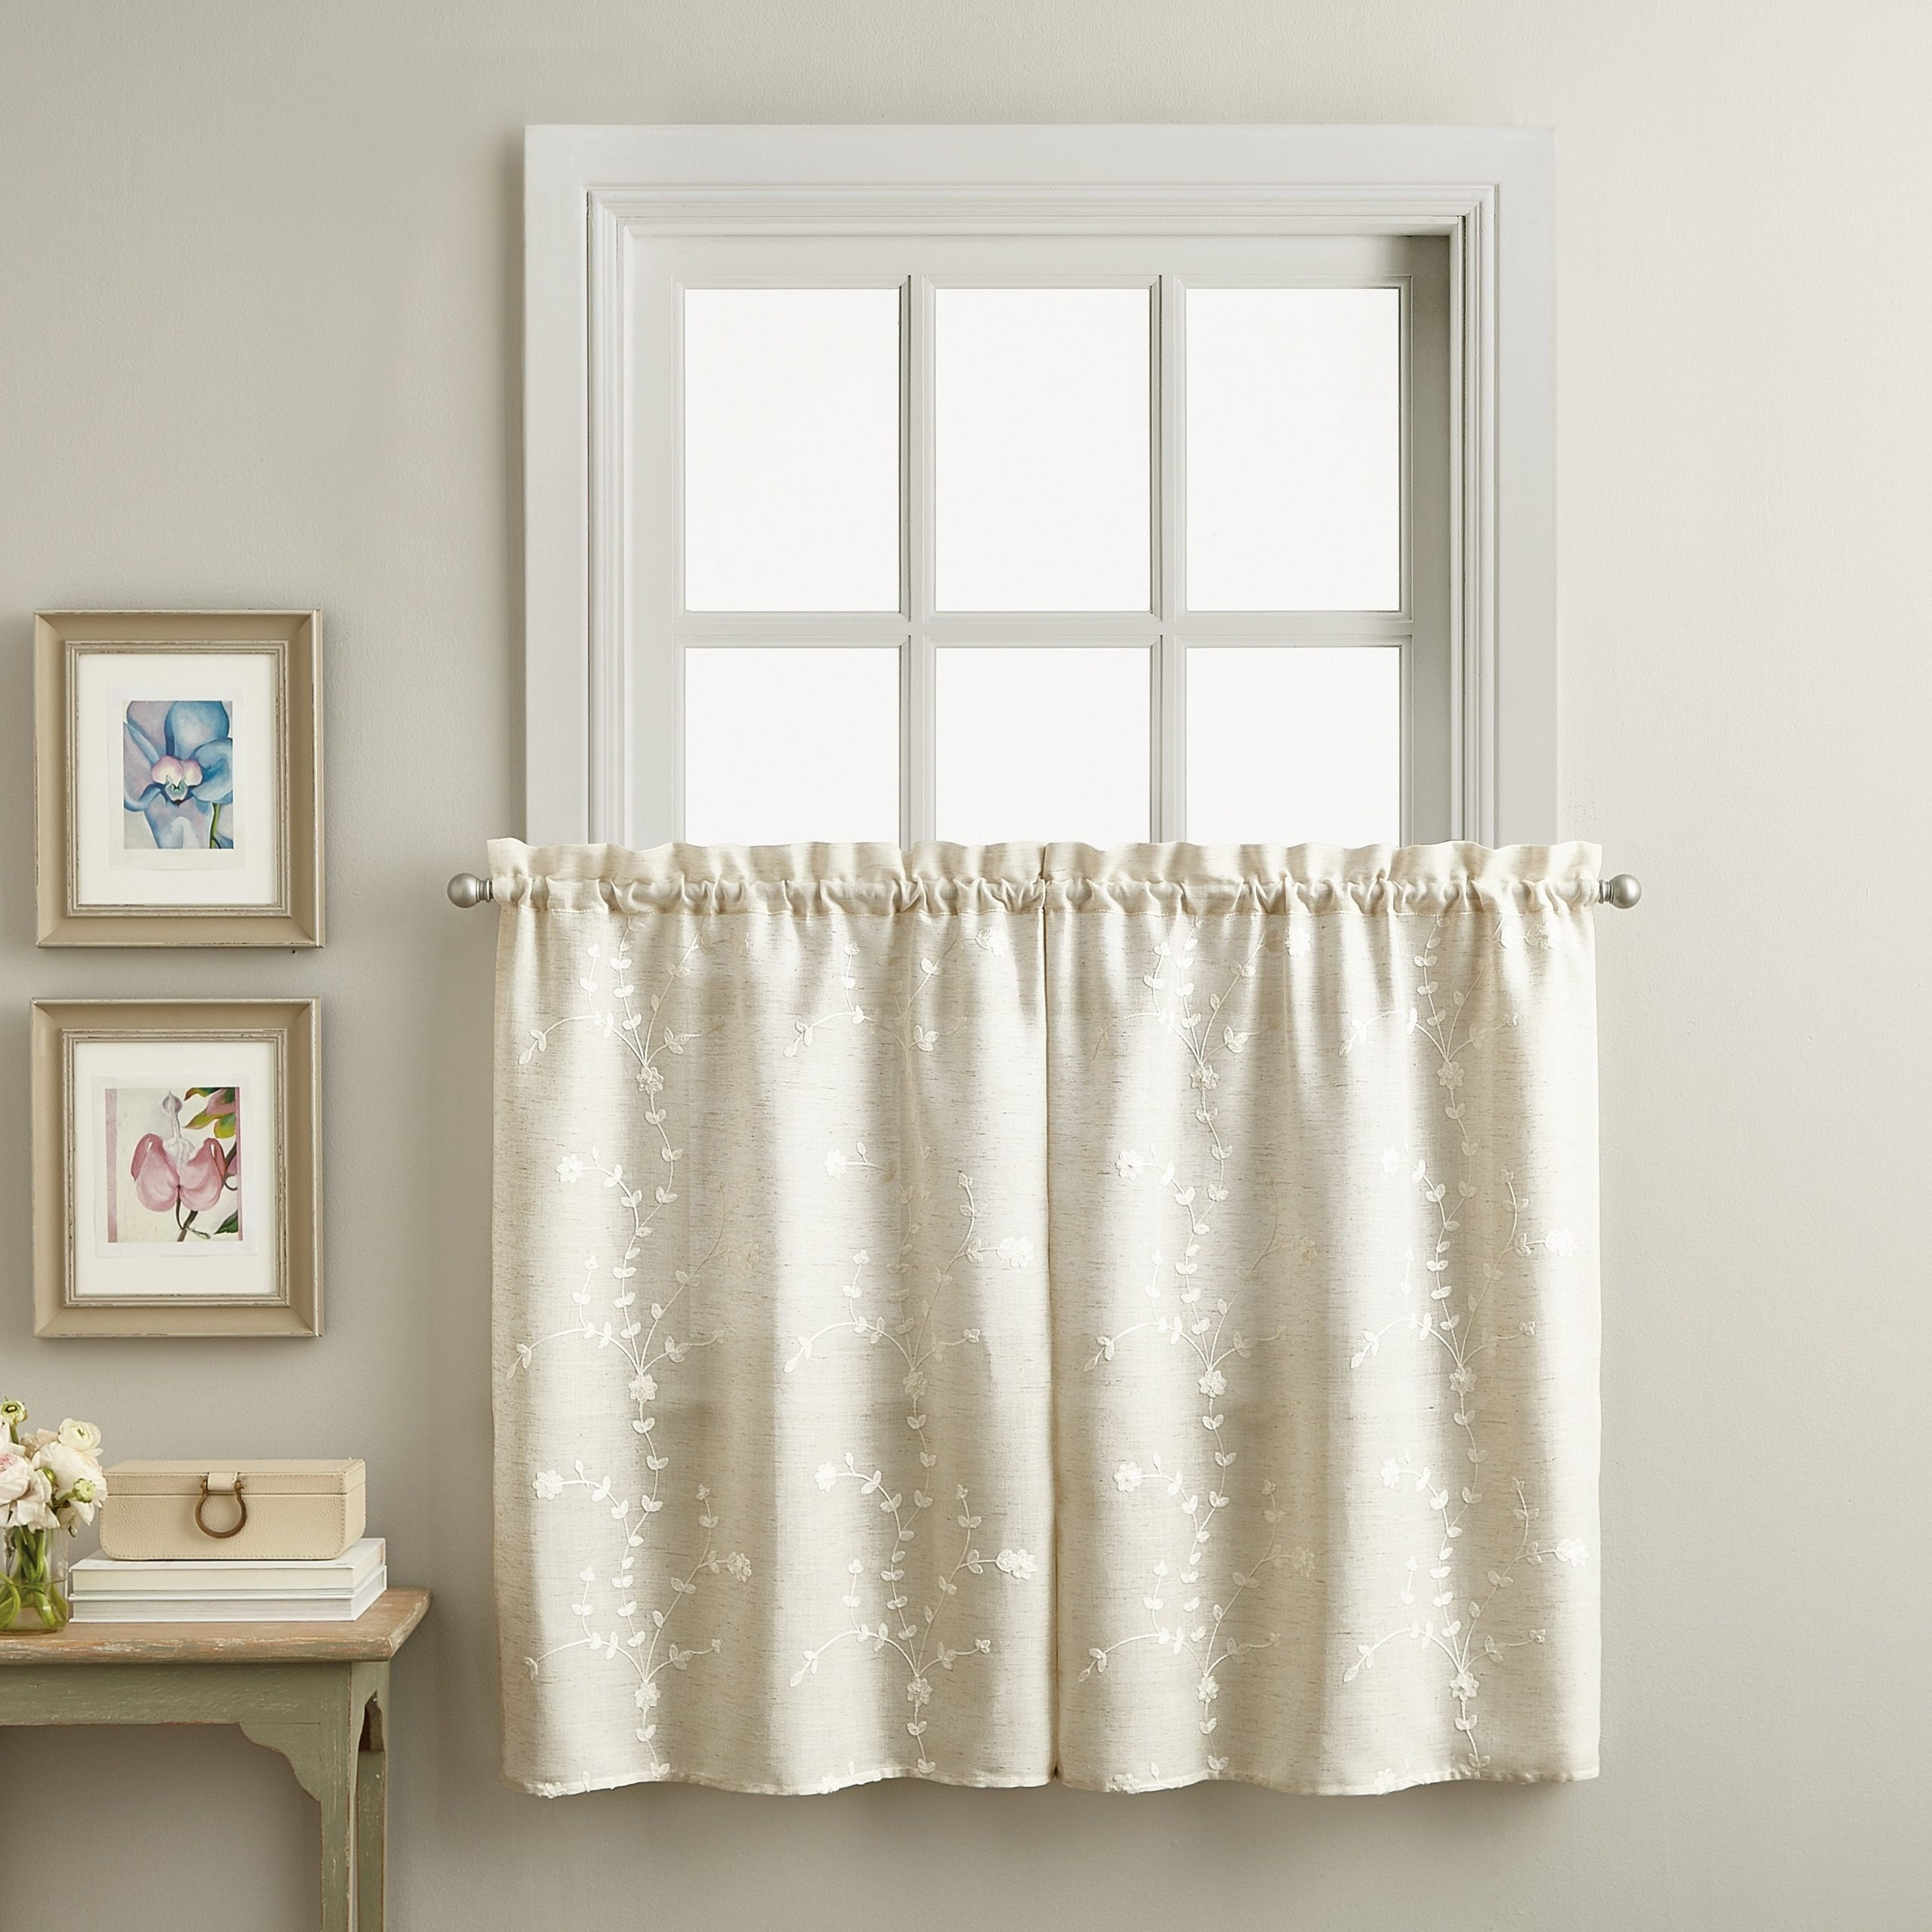 2021 White Tone On Tone Raised Microcheck Semisheer Window Curtain Pieces In Lynette Tailored Tier Set And Valance Curtain Collection (View 16 of 20)